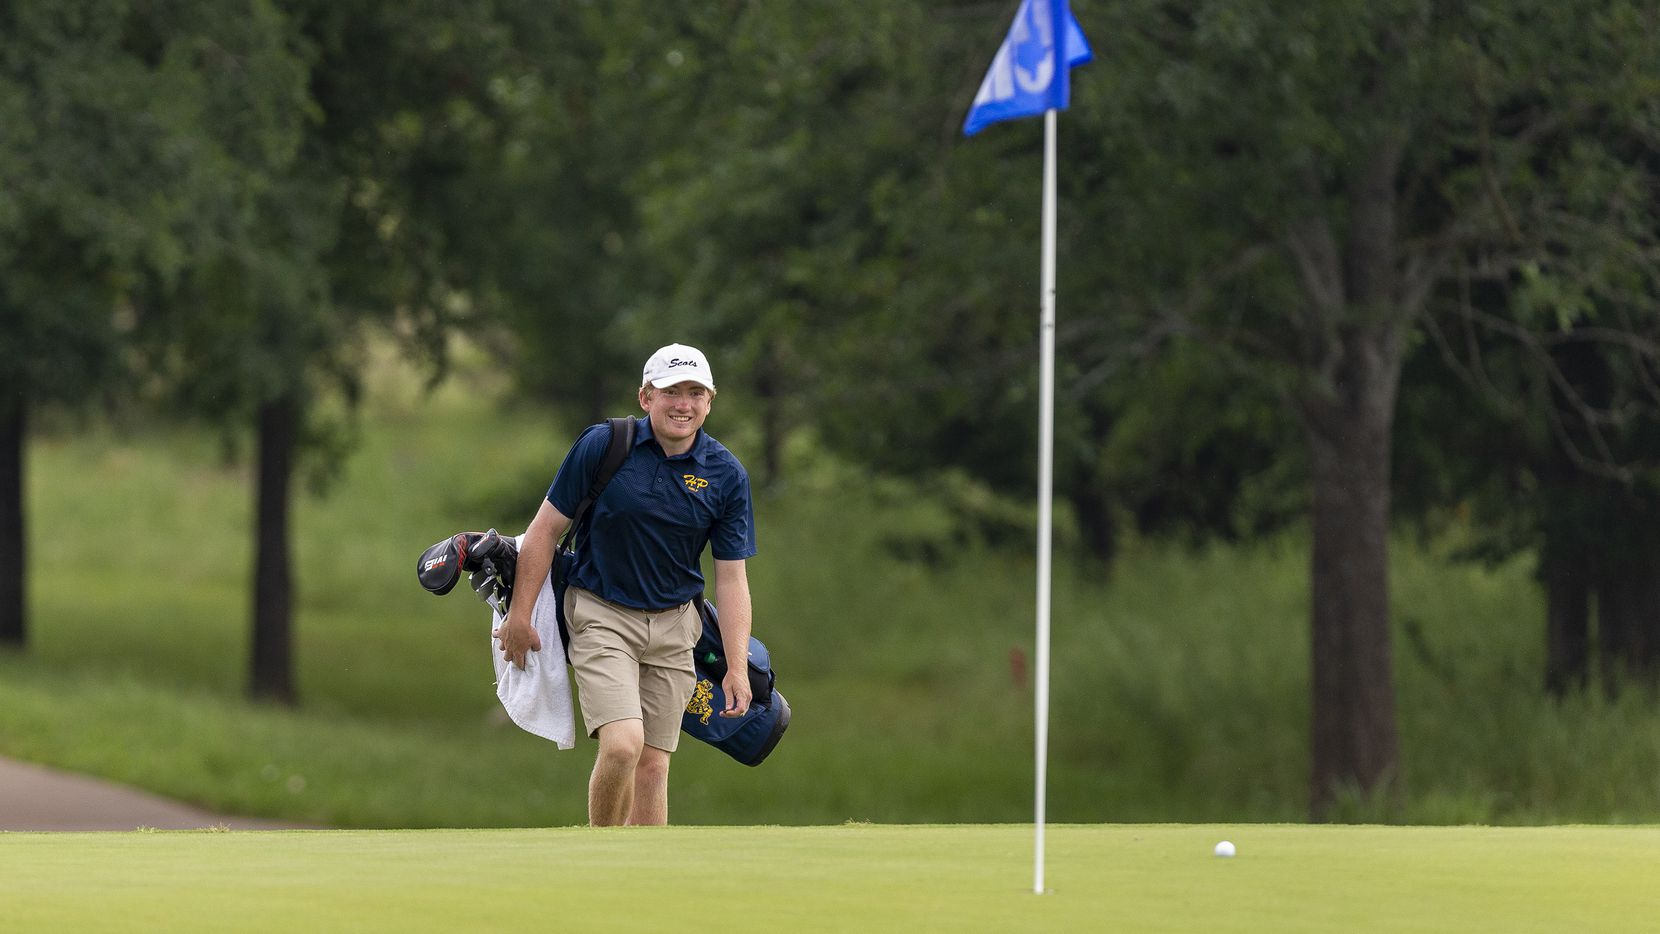 Highland Park's Turner Hosch walks to the 5th green during round 1 of the UIL Class 5A boys golf tournament in Georgetown, Monday, May 20, 2019. (Stephen Spillman/Special Contributor)